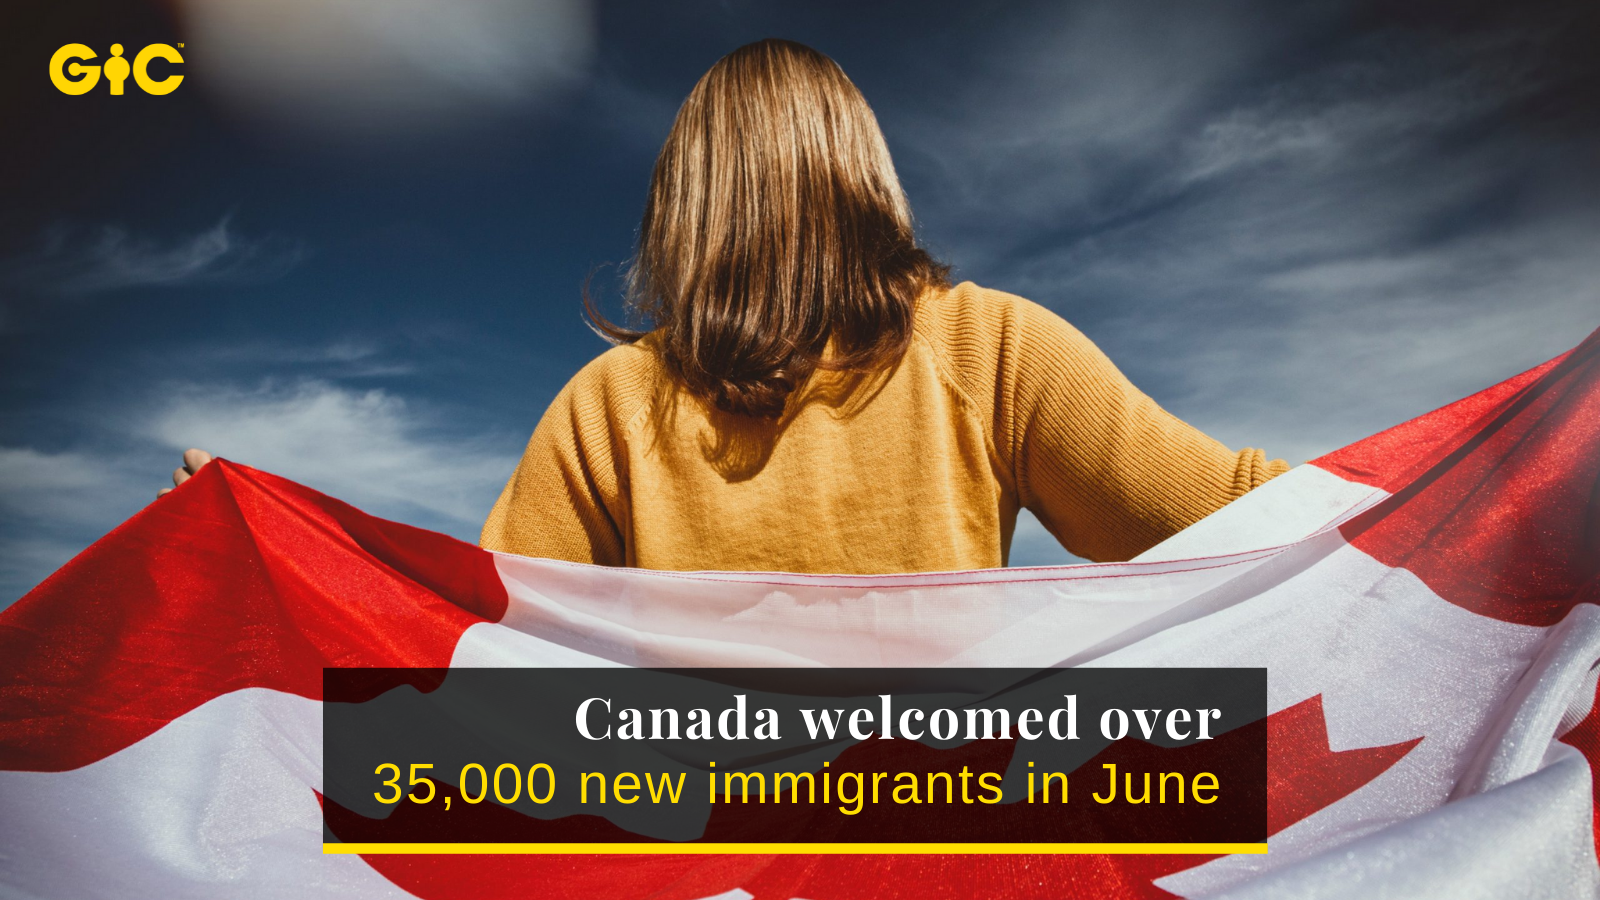 IRCC Canada welcomed over 35,000 new immigrants in June